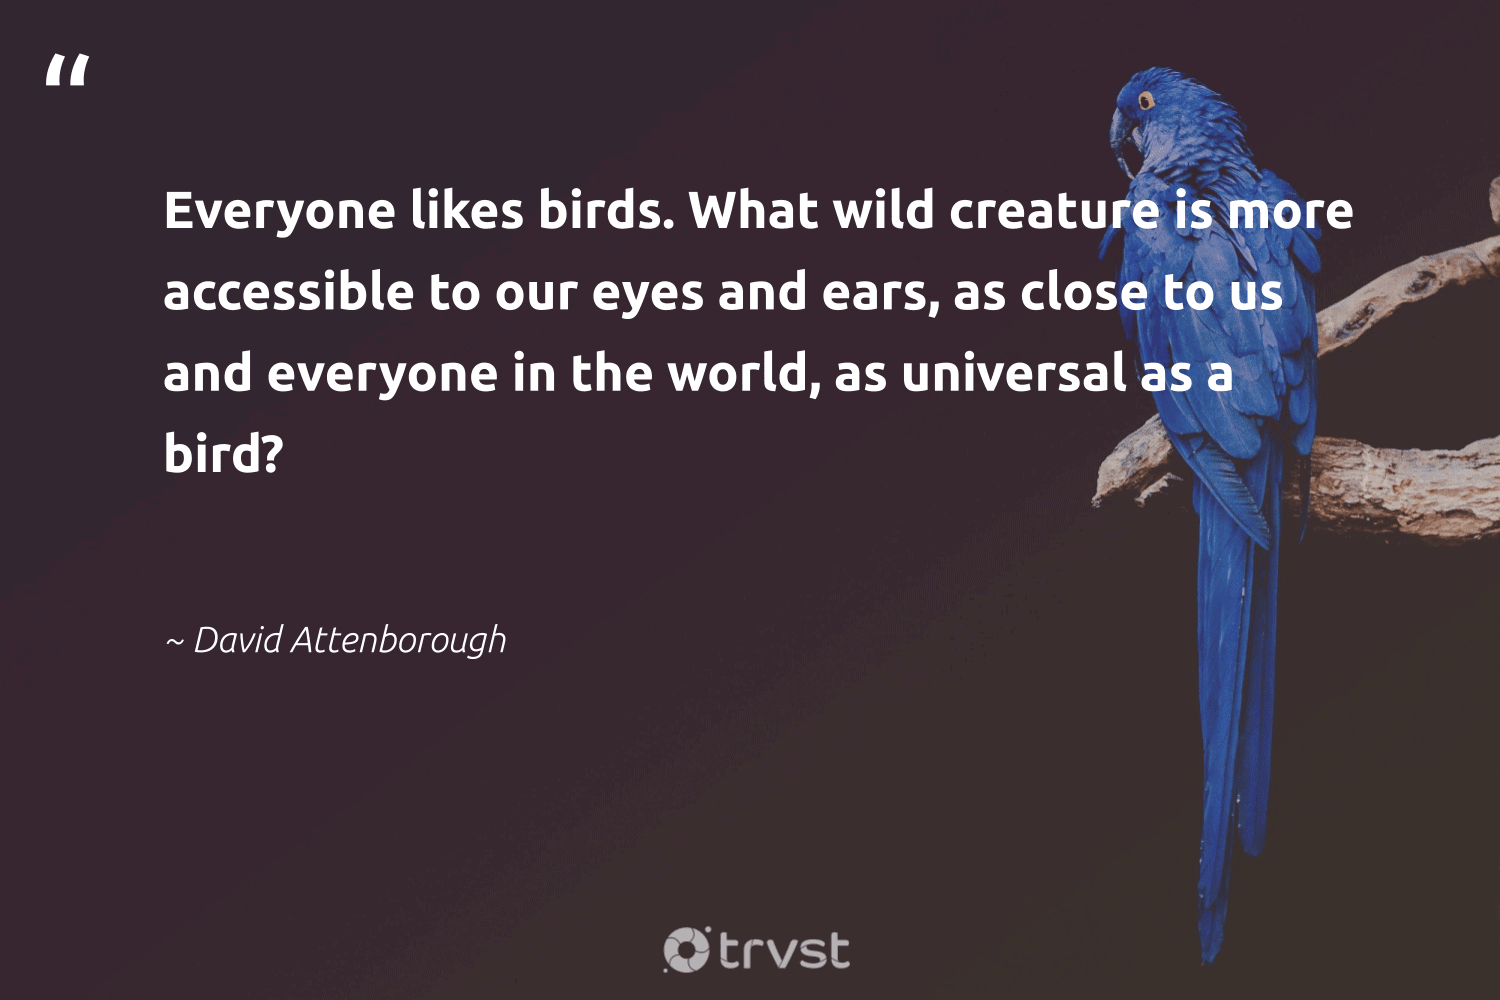 """""""Everyone likes birds. What wild creature is more accessible to our eyes and ears, as close to us and everyone in the world, as universal as a bird?""""  - David Attenborough #trvst #quotes #birds #bird #geology #collectiveaction #forscience #ecoconscious #biology #dosomething #natural #changetheworld"""